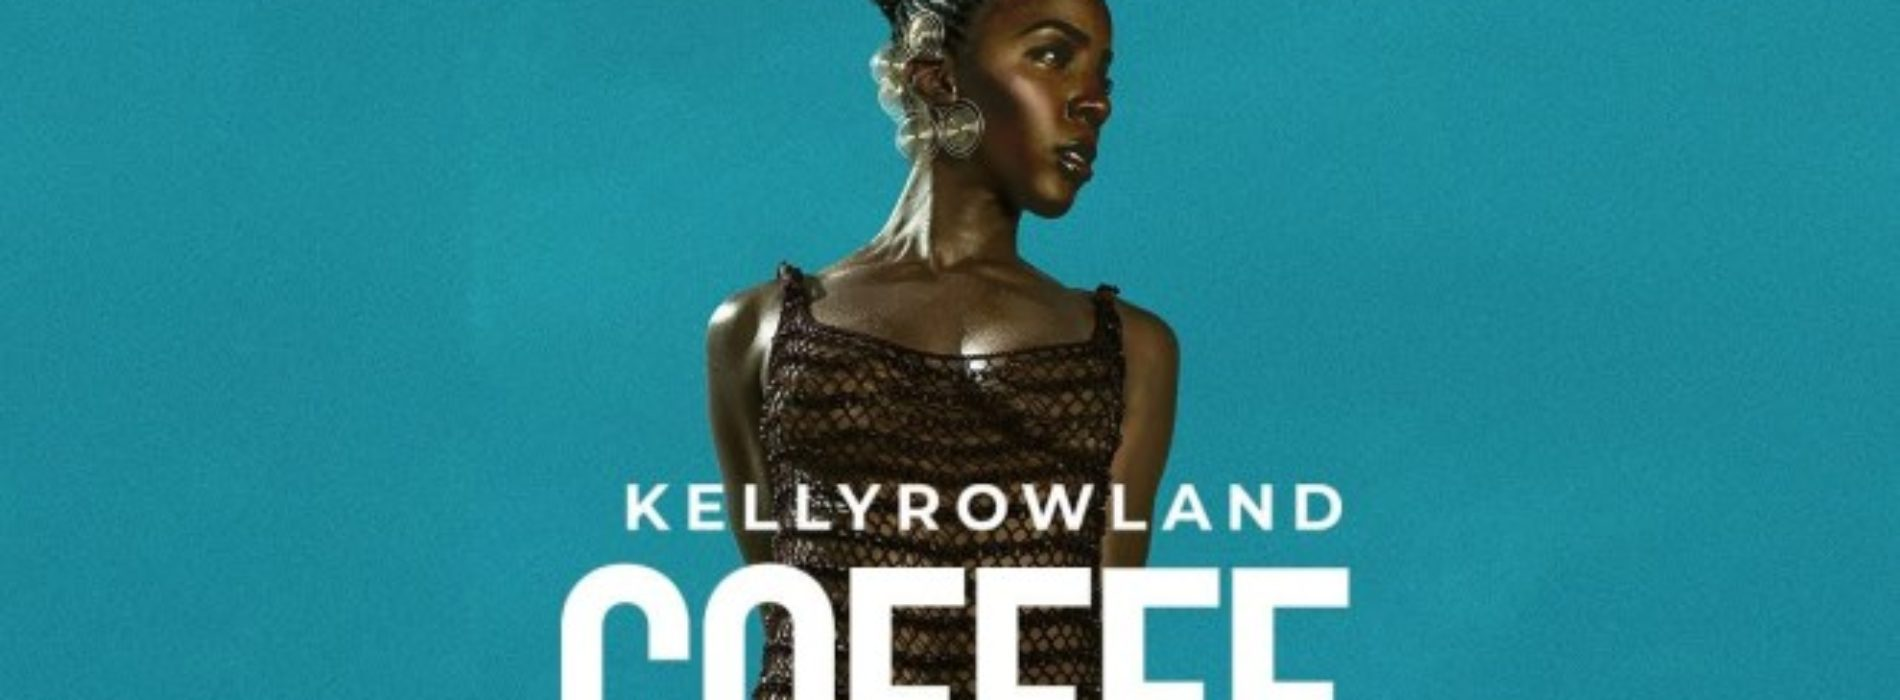 Kelly Rowland – COFFEE (Official Video) – Avril 2020